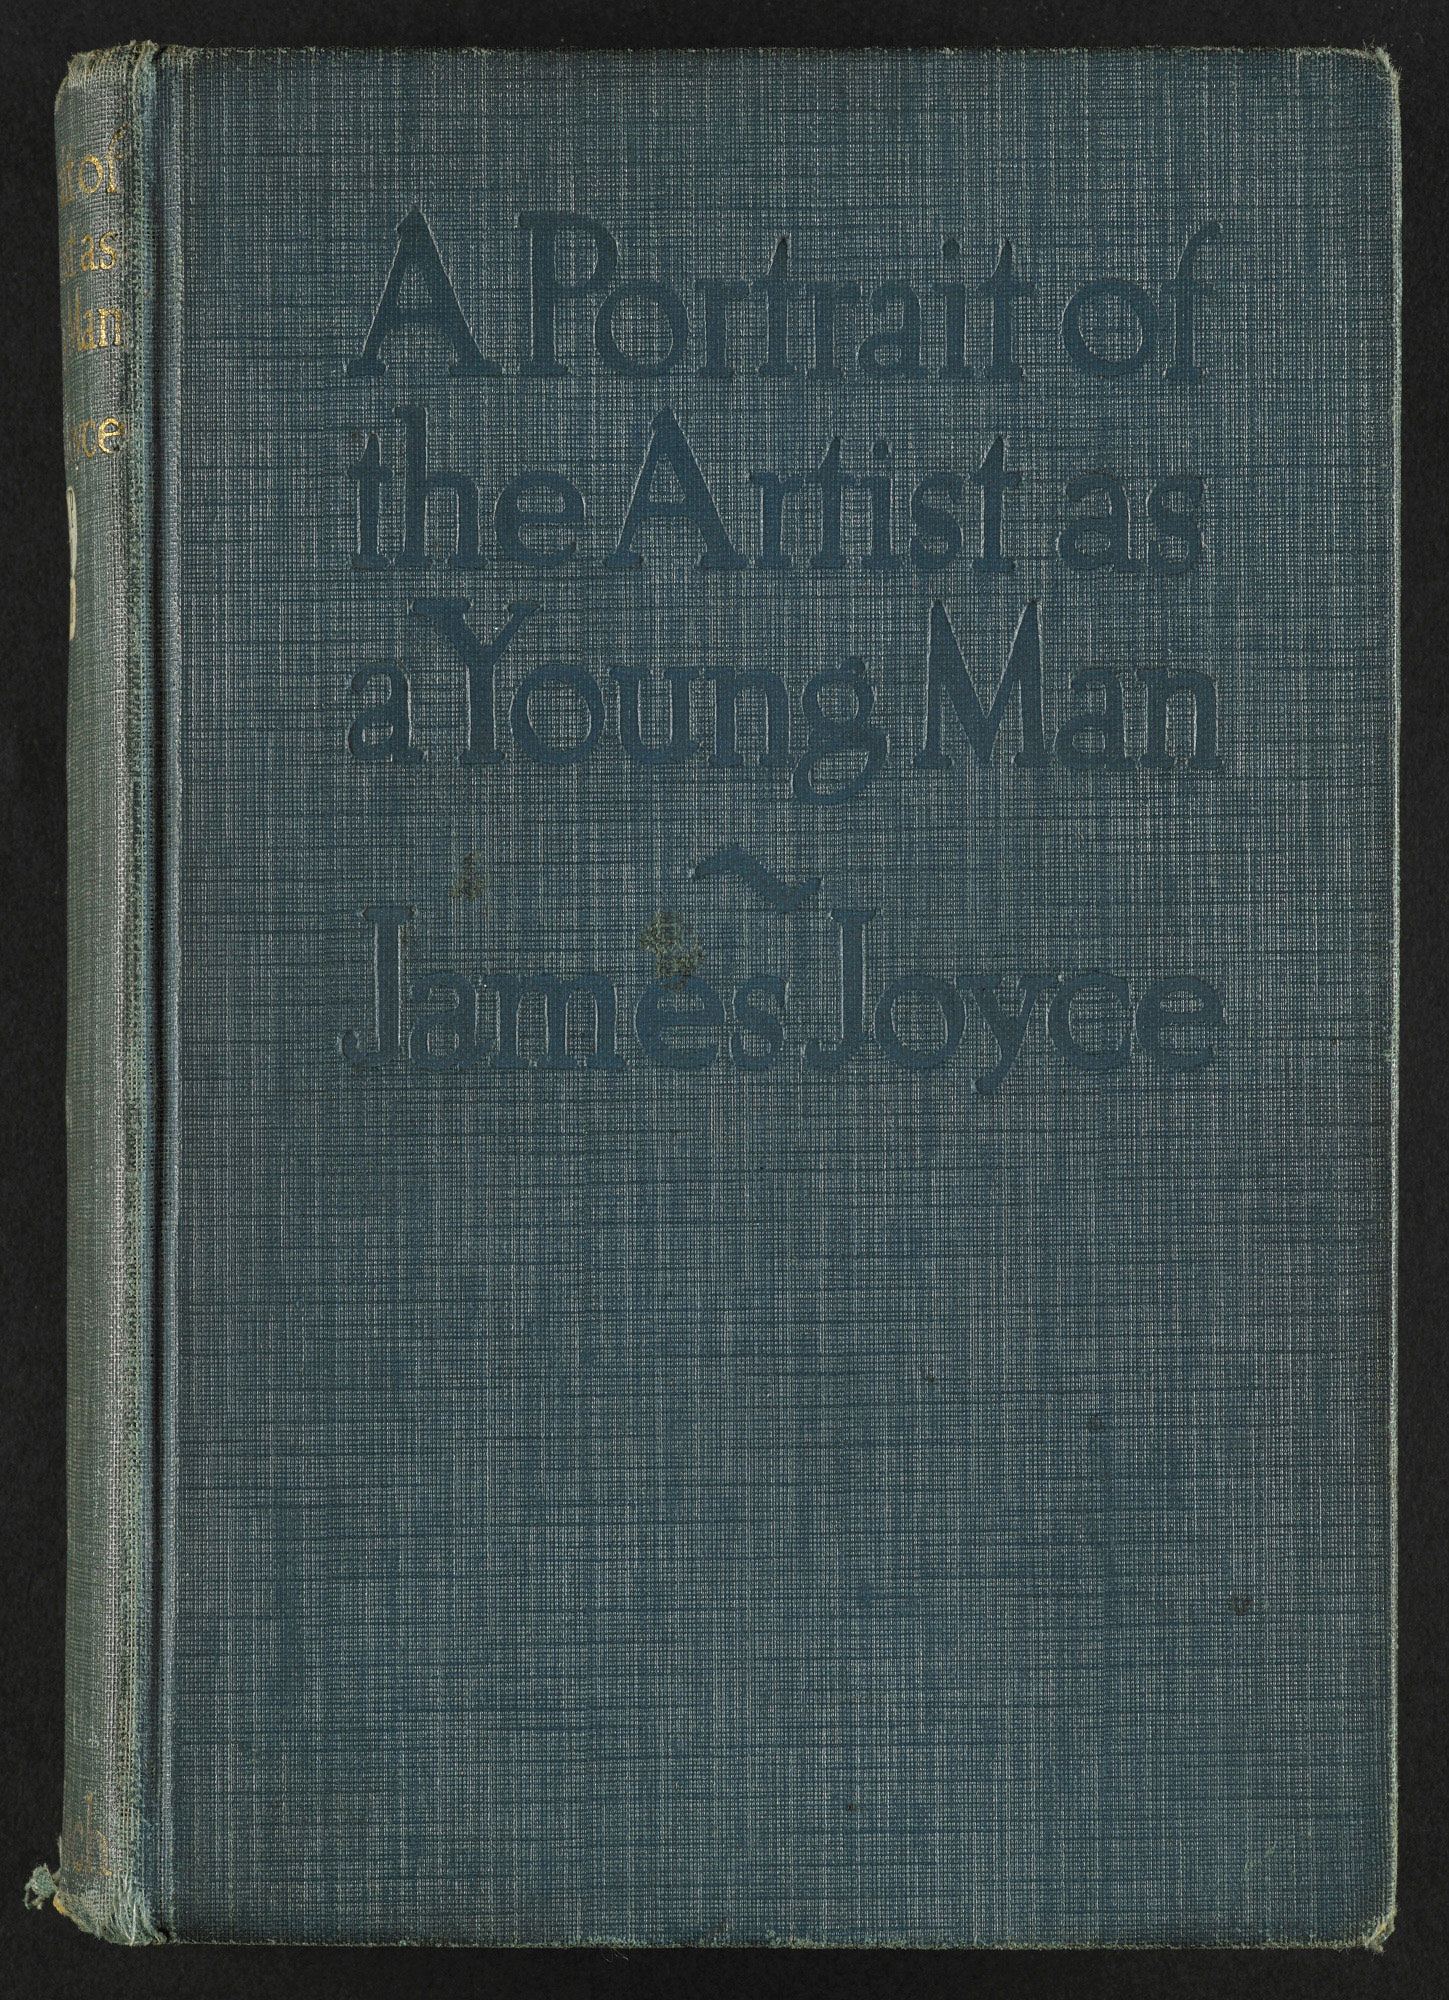 A Portrait of the Artist as a Young Man by James Joyce, 1916 US edition